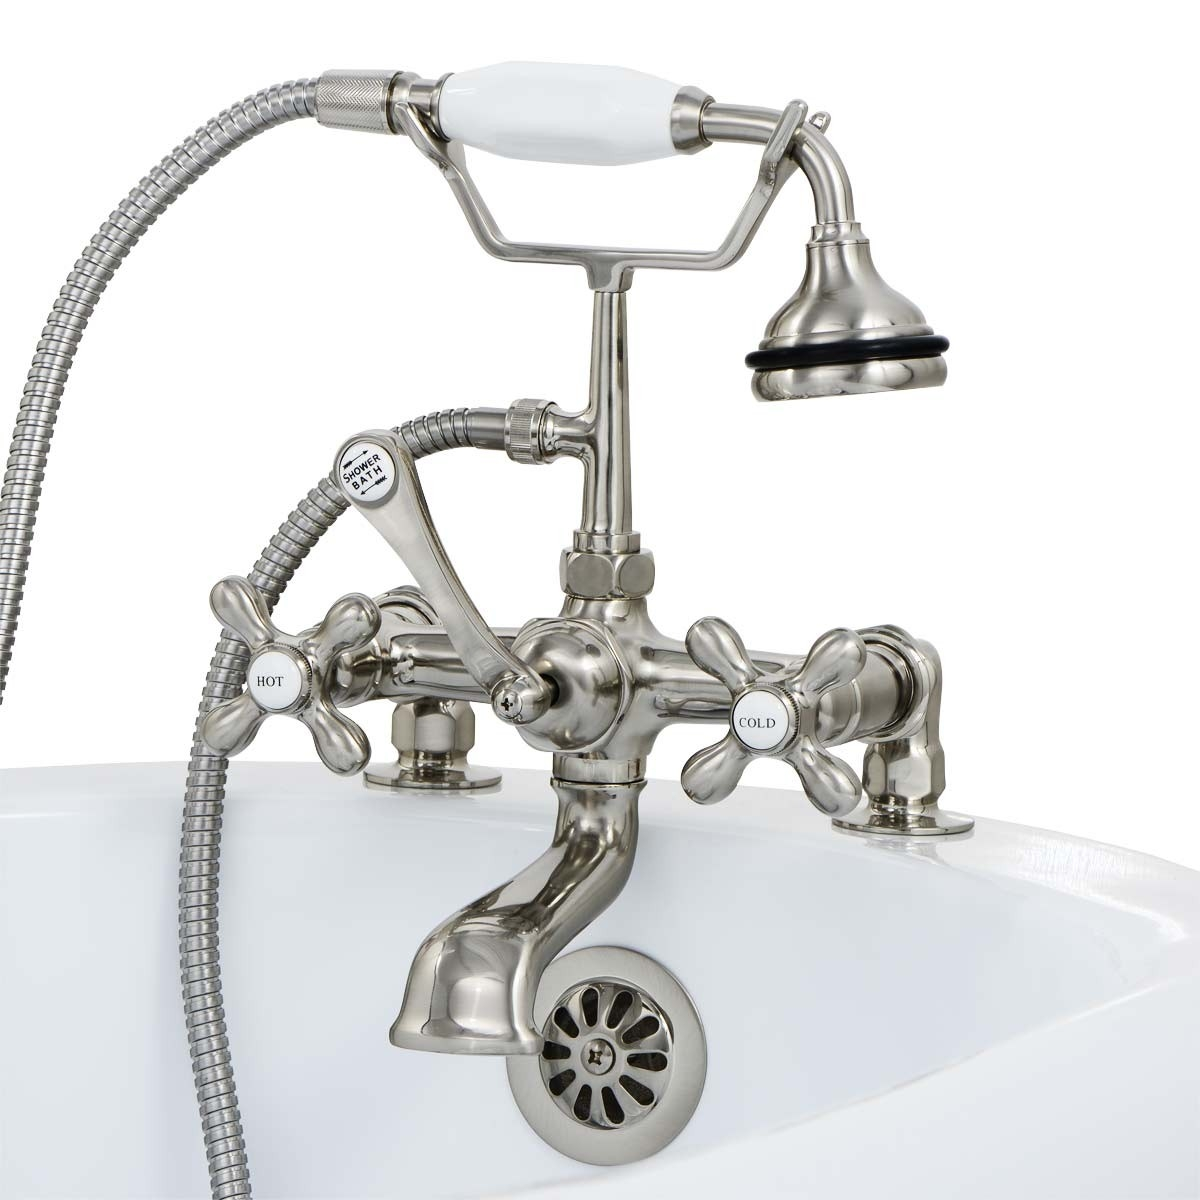 Ideas, old fashioned tub faucets old fashioned tub faucets randolph morris deck mount british telephone clawfoot tub faucet w 1200 x 1200  .